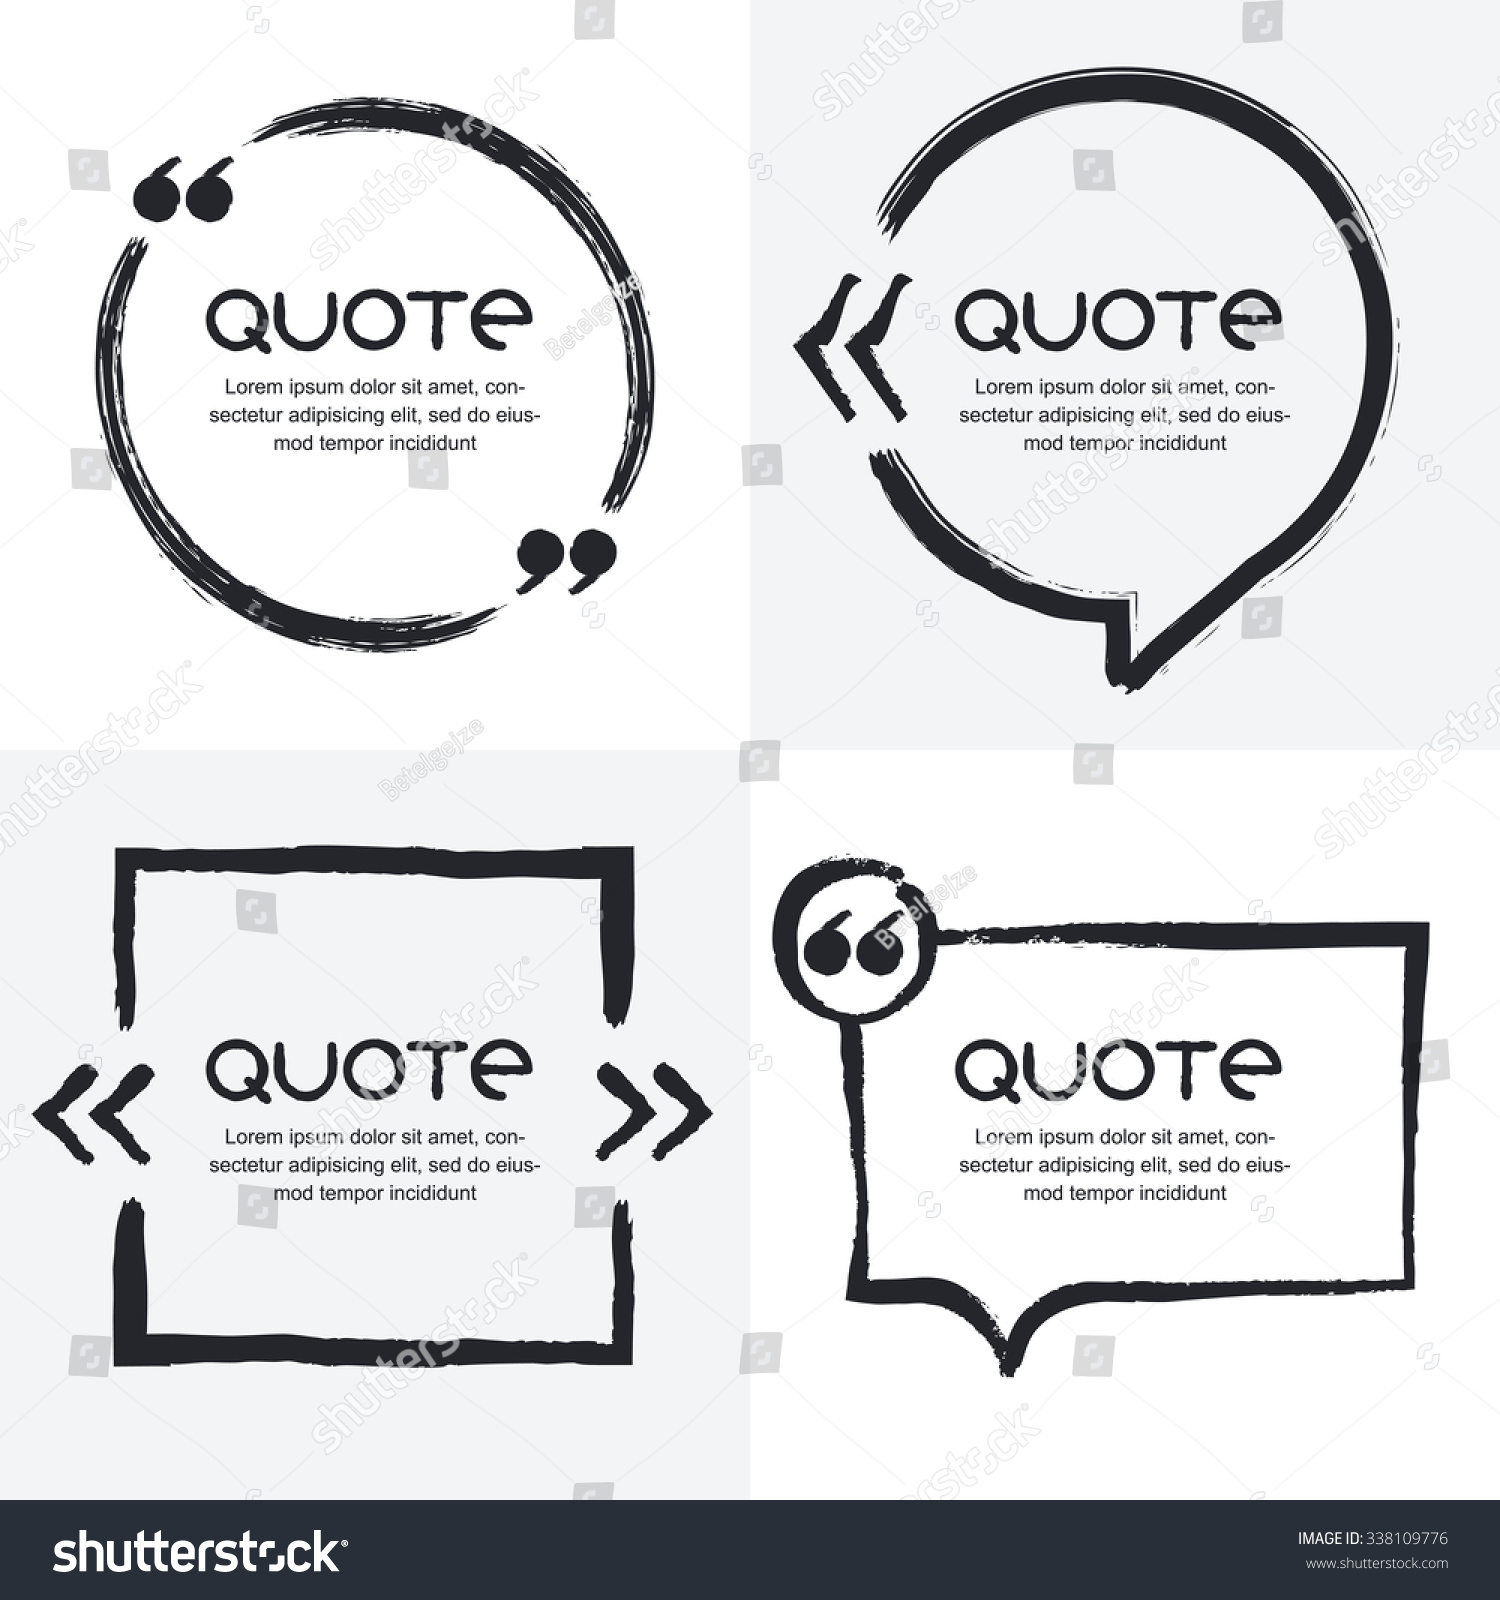 blank quote forms akba greenw co